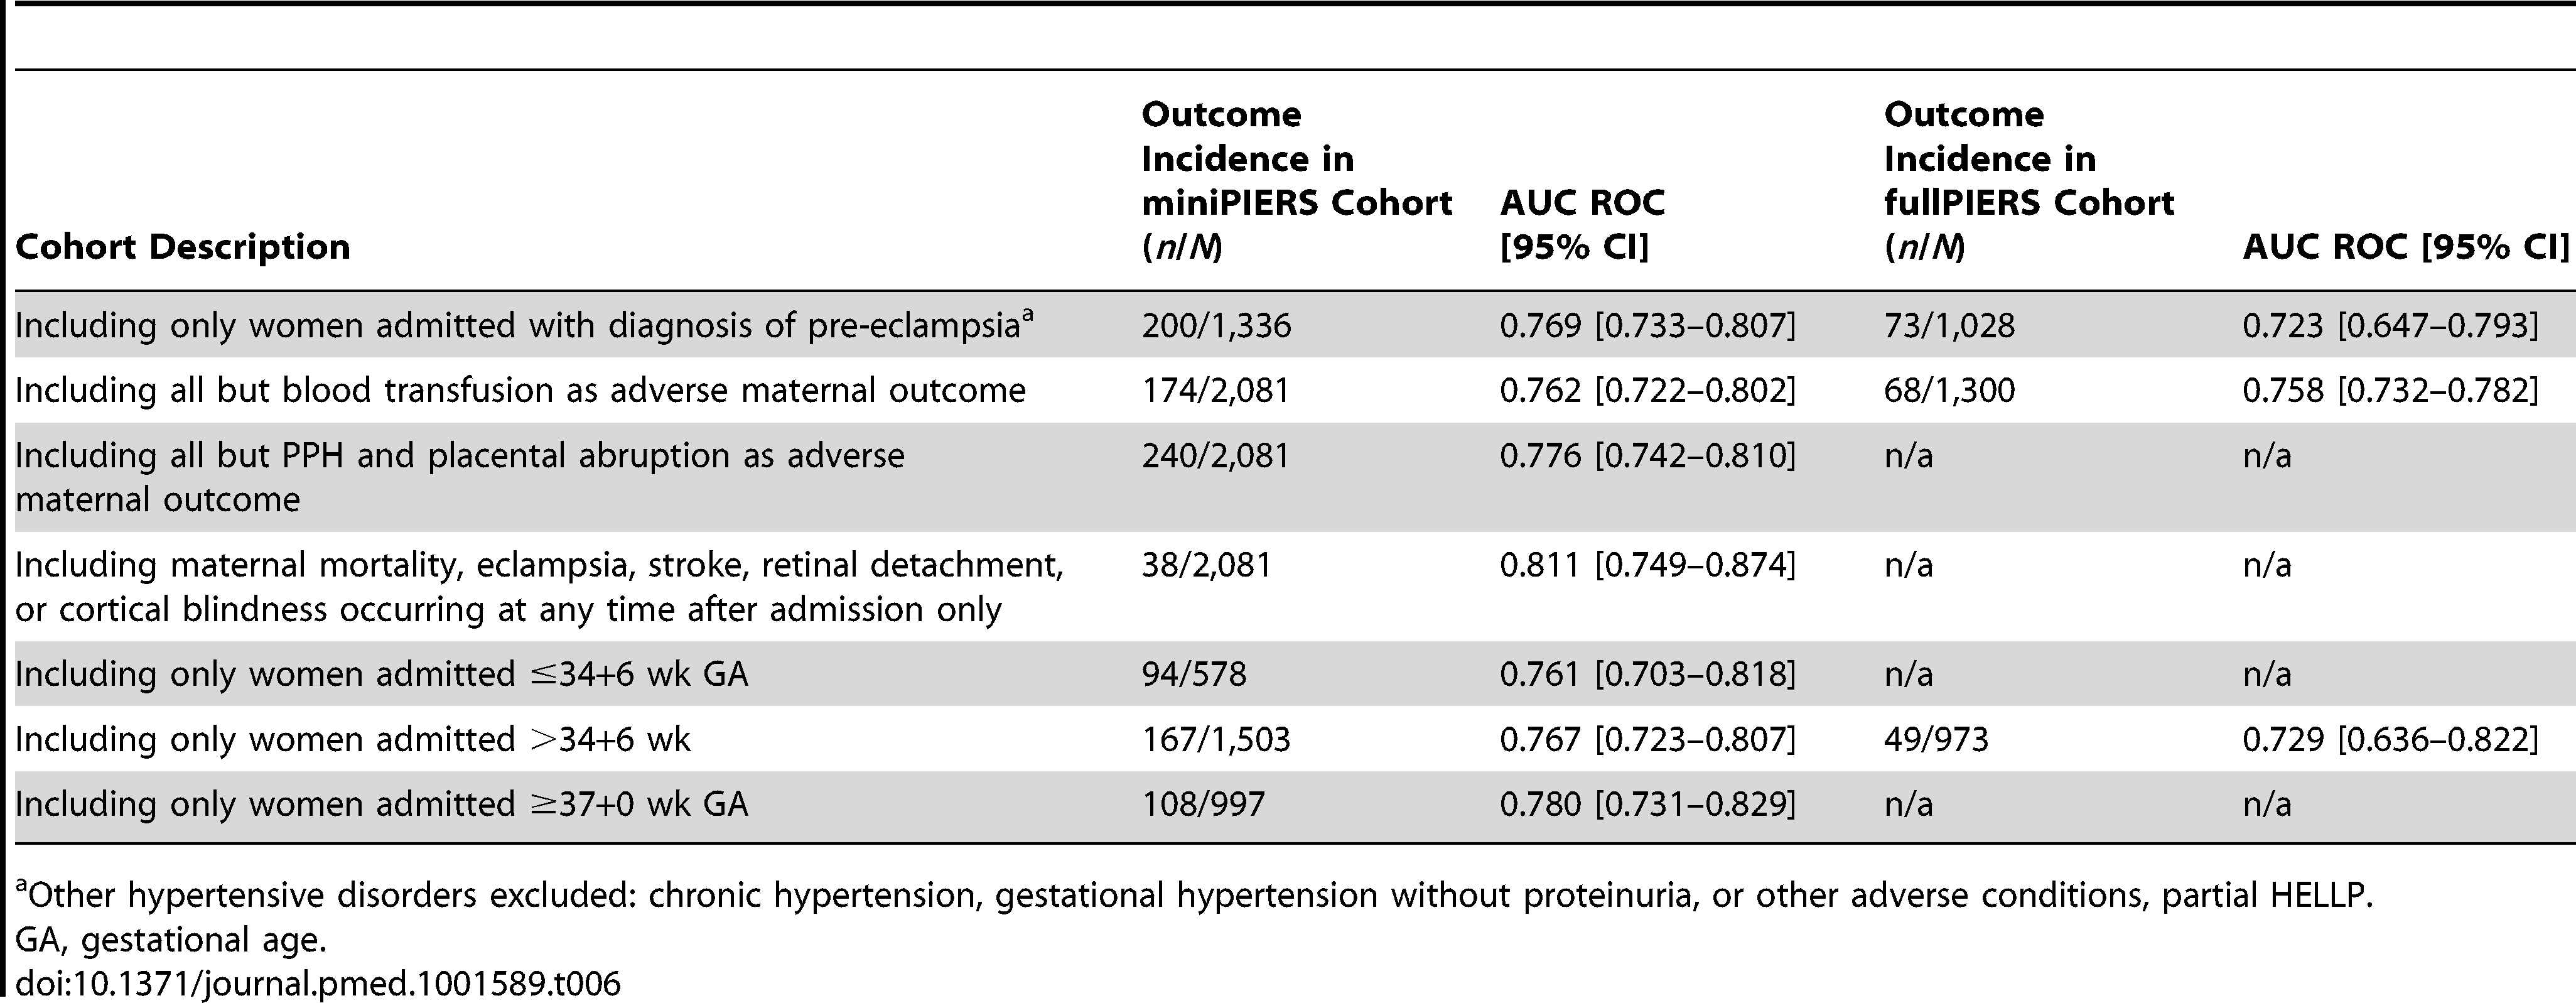 Results of sensitivity analysis using the miniPIERS model to predict adverse maternal outcome in subsets of the data or to predict restricted definition of the combined adverse outcome, as described, in the miniPIERS and fullPIERS cohorts.